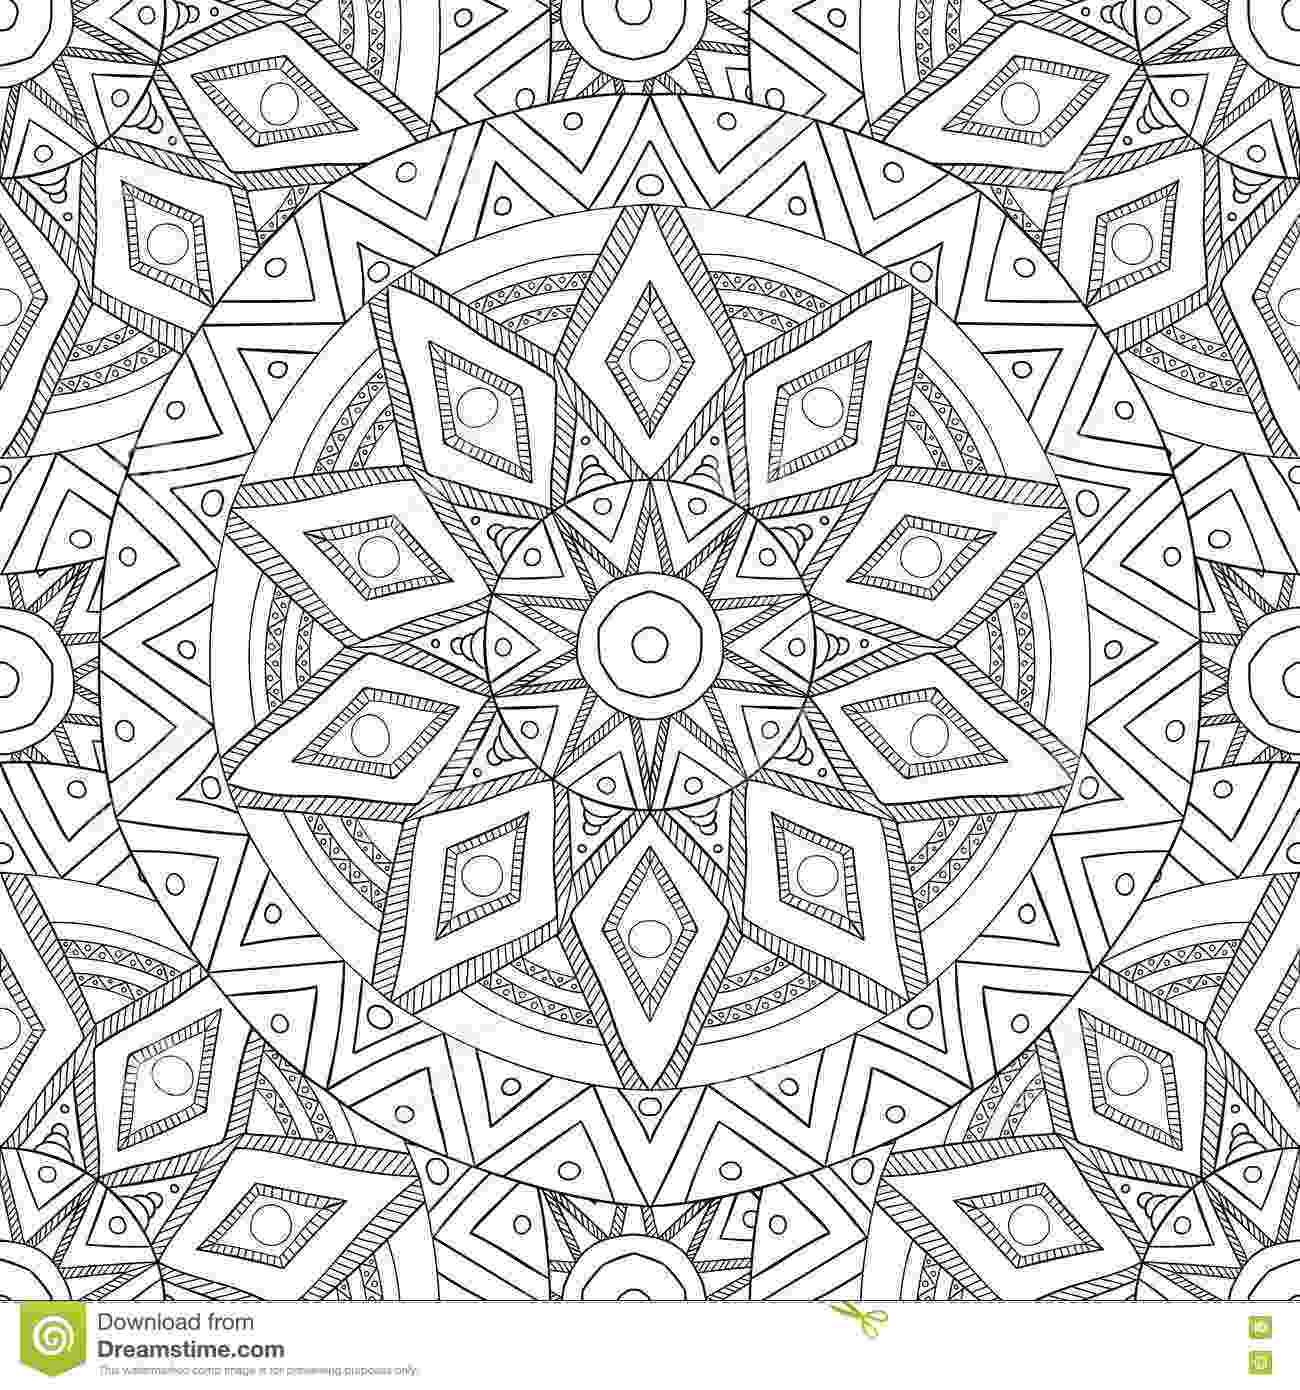 nature coloring pages for adults nature coloring pages for adults free printable coloring for nature adults pages